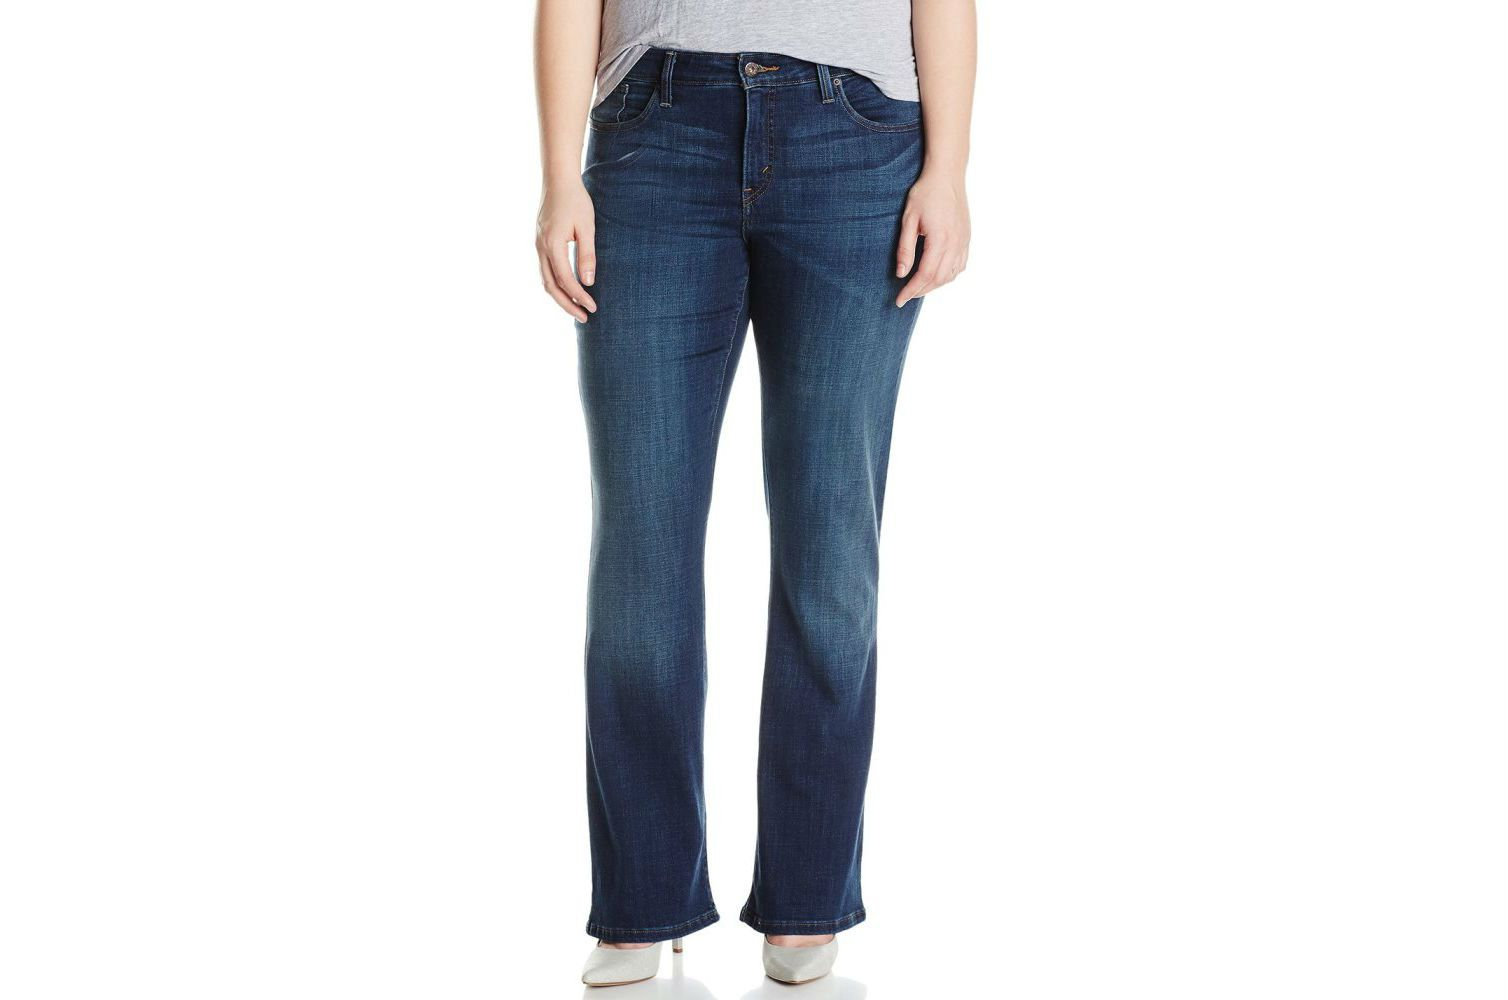 largest selection of many fashionable hoard as a rare commodity The Best Jeans Brands and Styles for an Apple Body Type